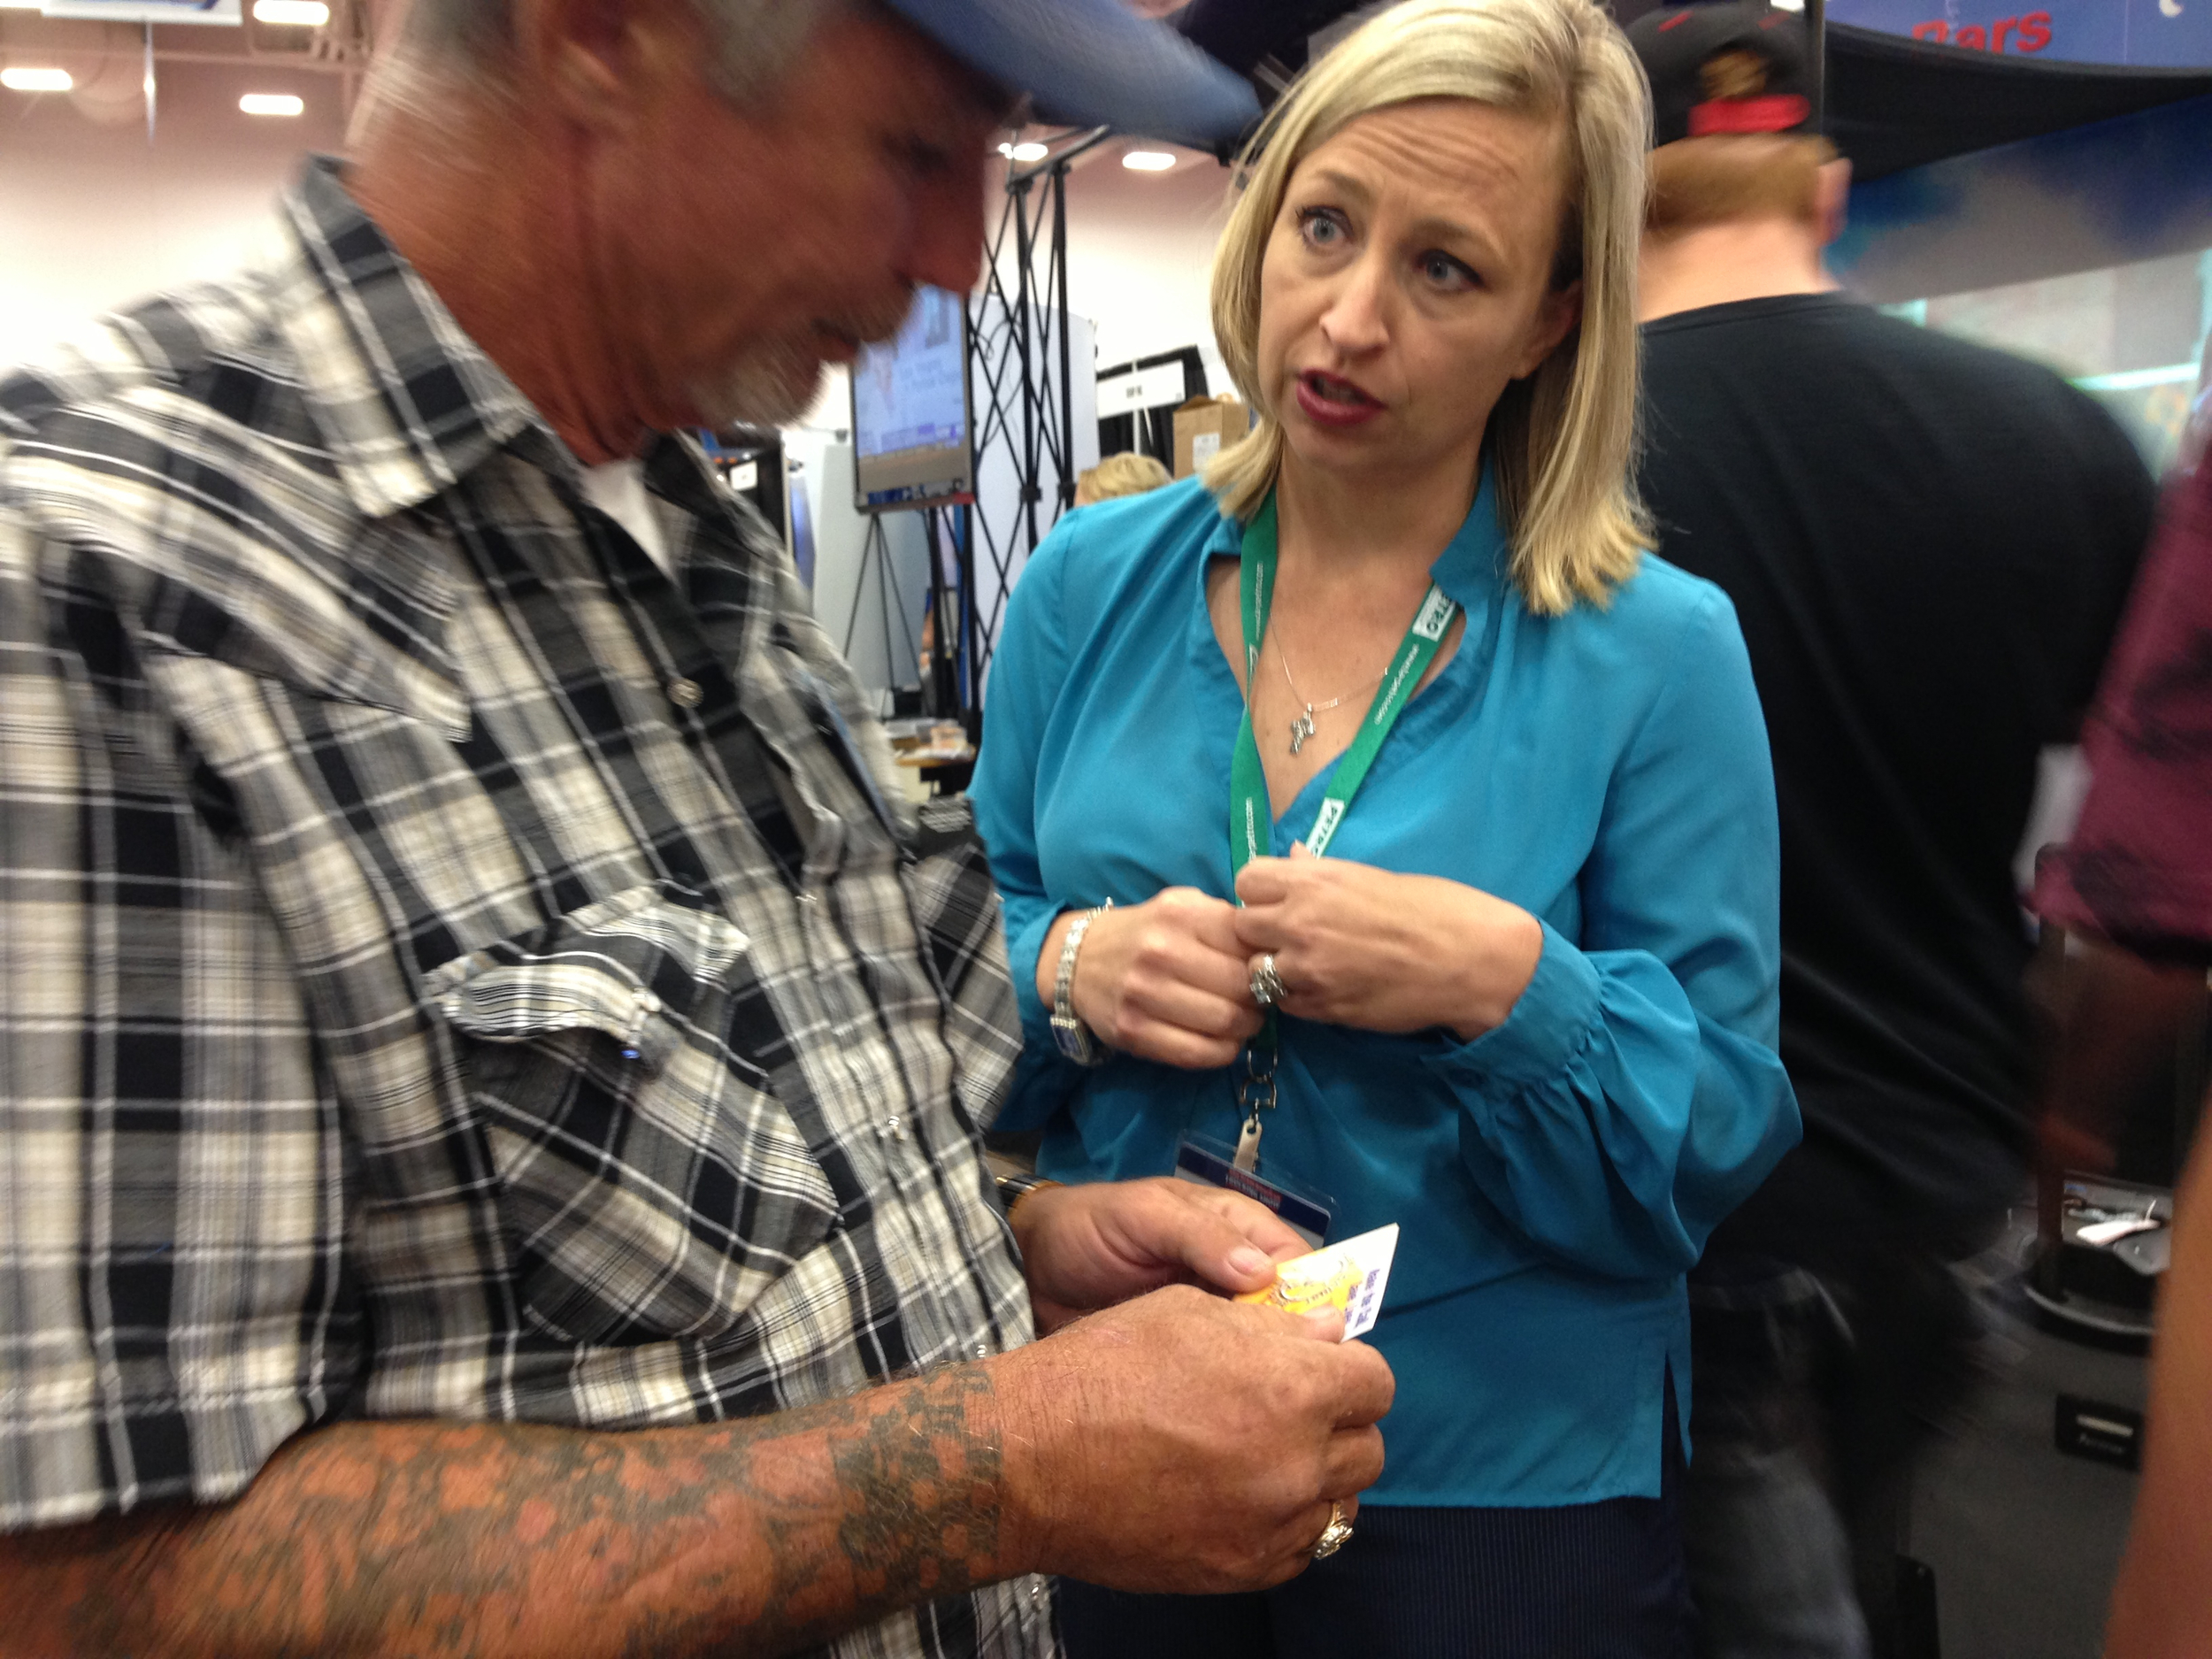 Kylla handing out wallet cards at the Great American Trucking Show in Dallas